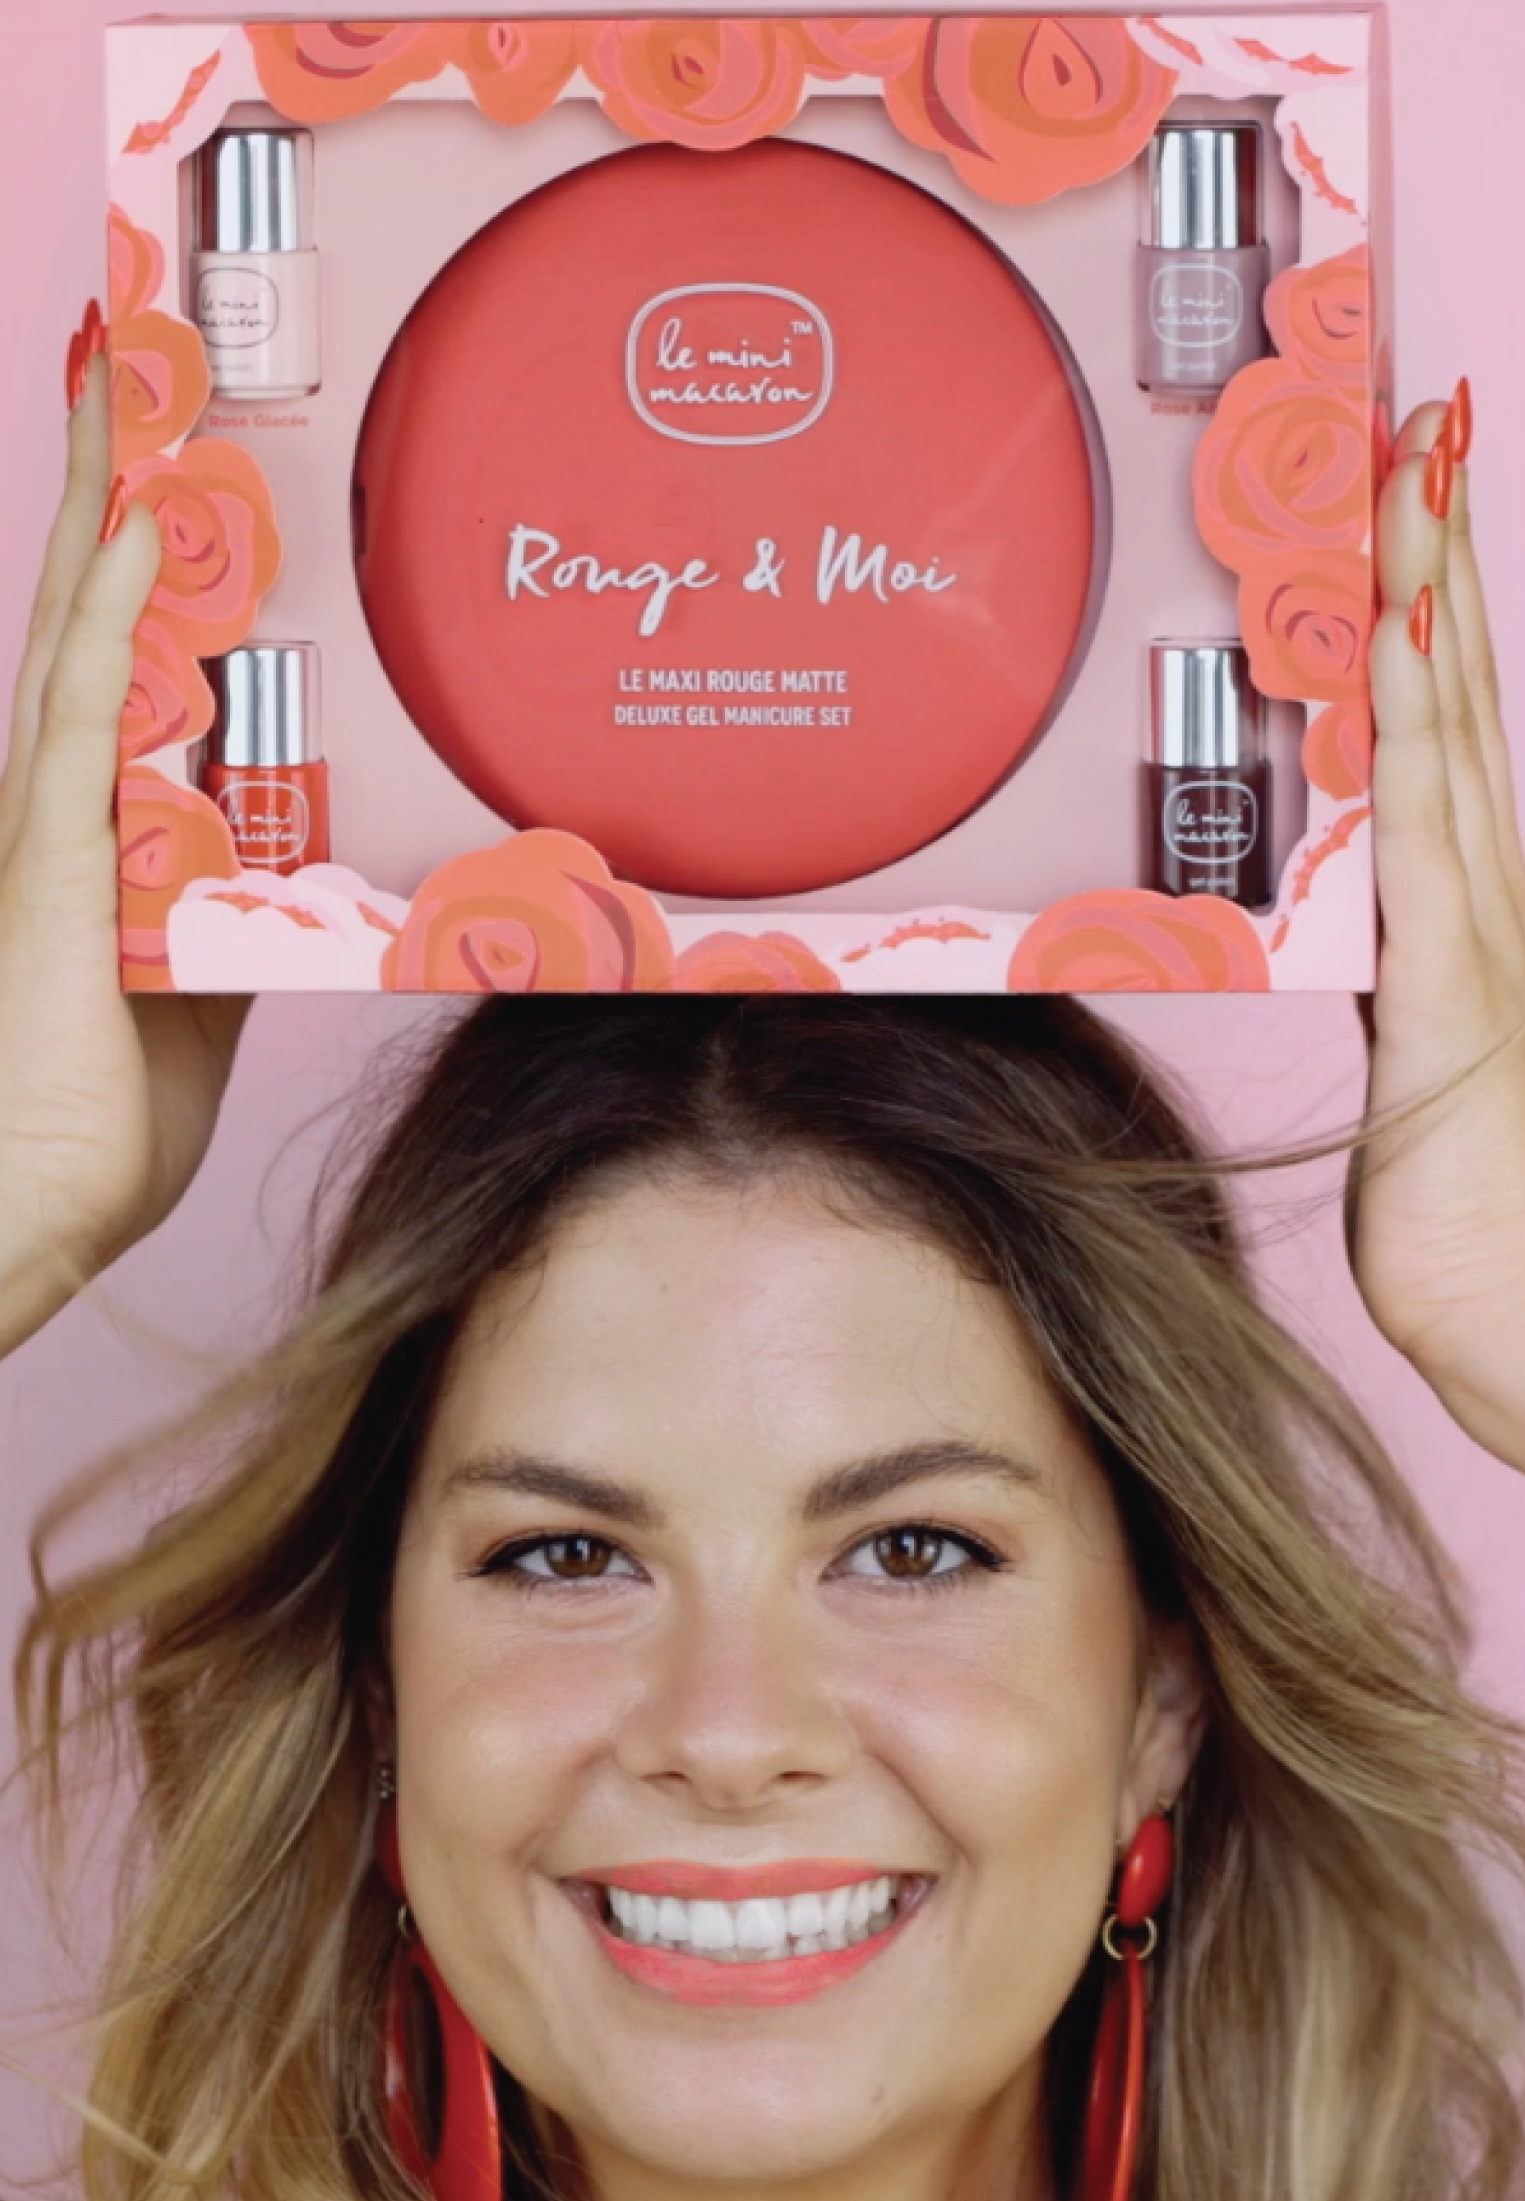 Le Mini Macaron - LE MAXI ROUGE & MOI LIMITED EDITION DELUXE GEL MANICURE SET - Nail set - mix of reds - 1